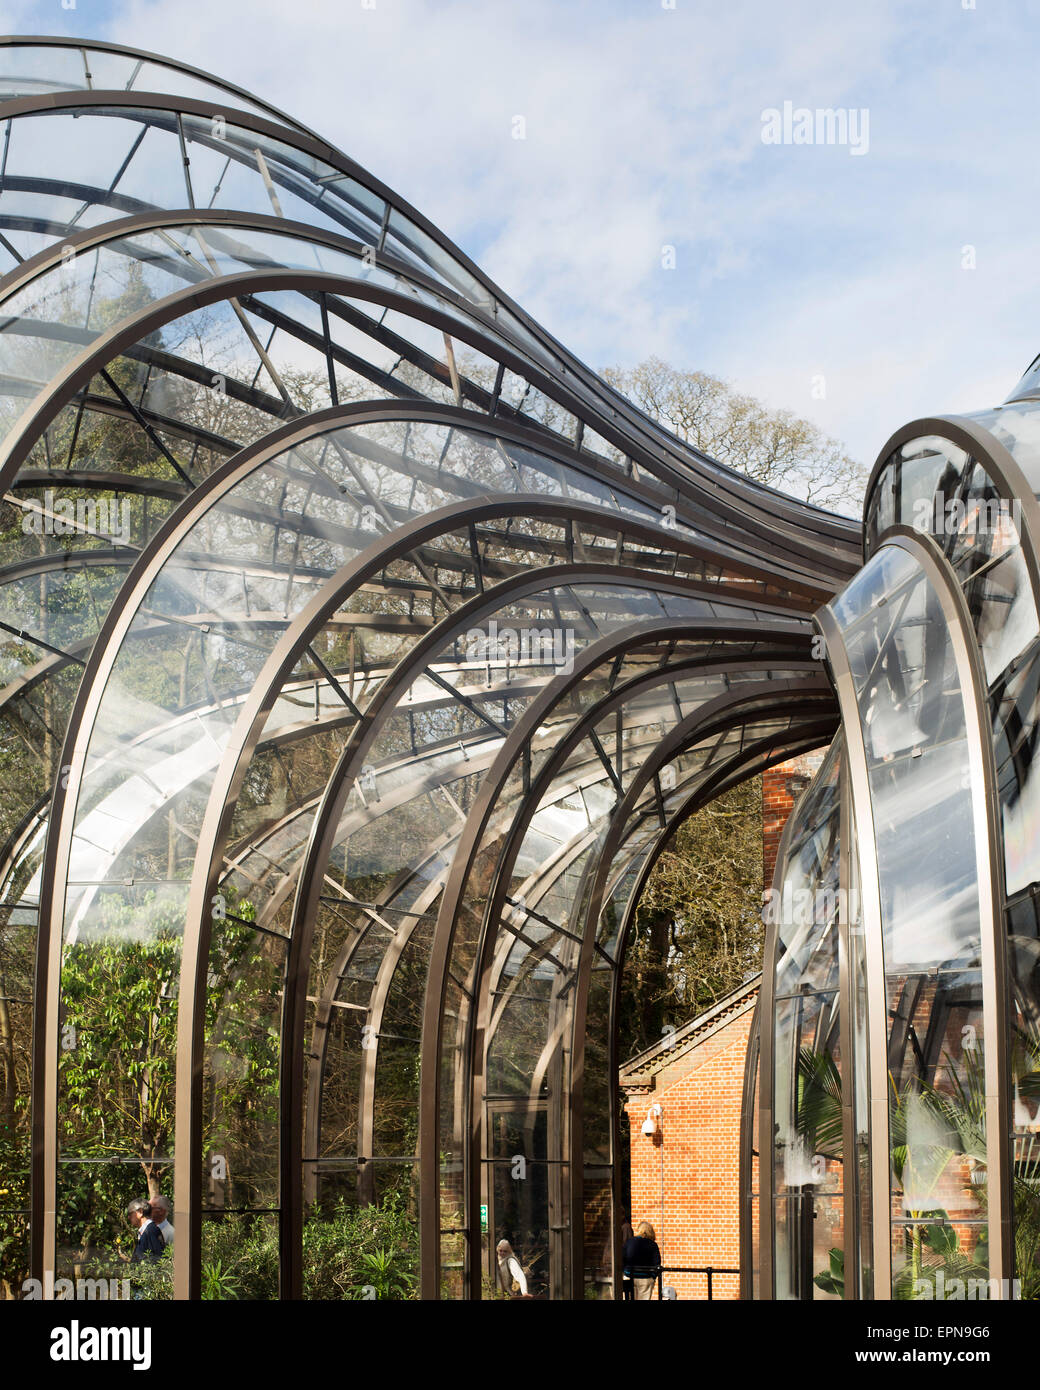 Detail view of glass houses bombay sapphire distillery laverstoke united kingdom architect